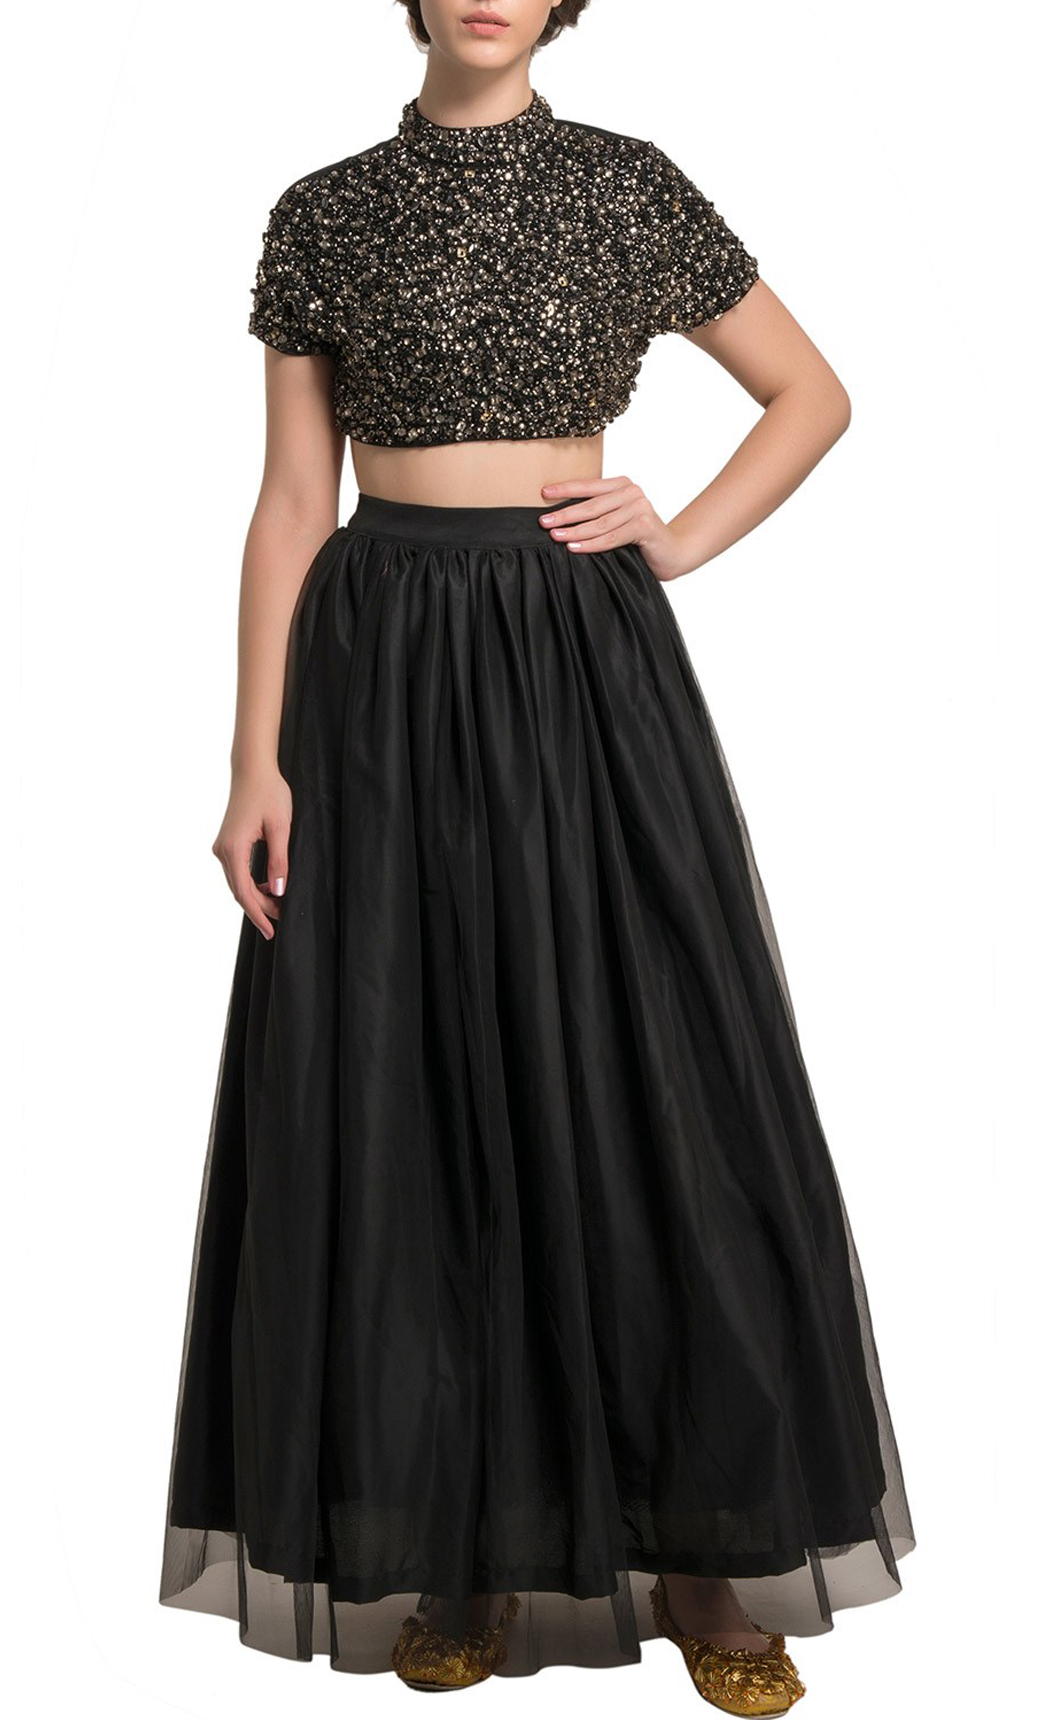 Black Lehenga and Embellished Blouse - Buy Online